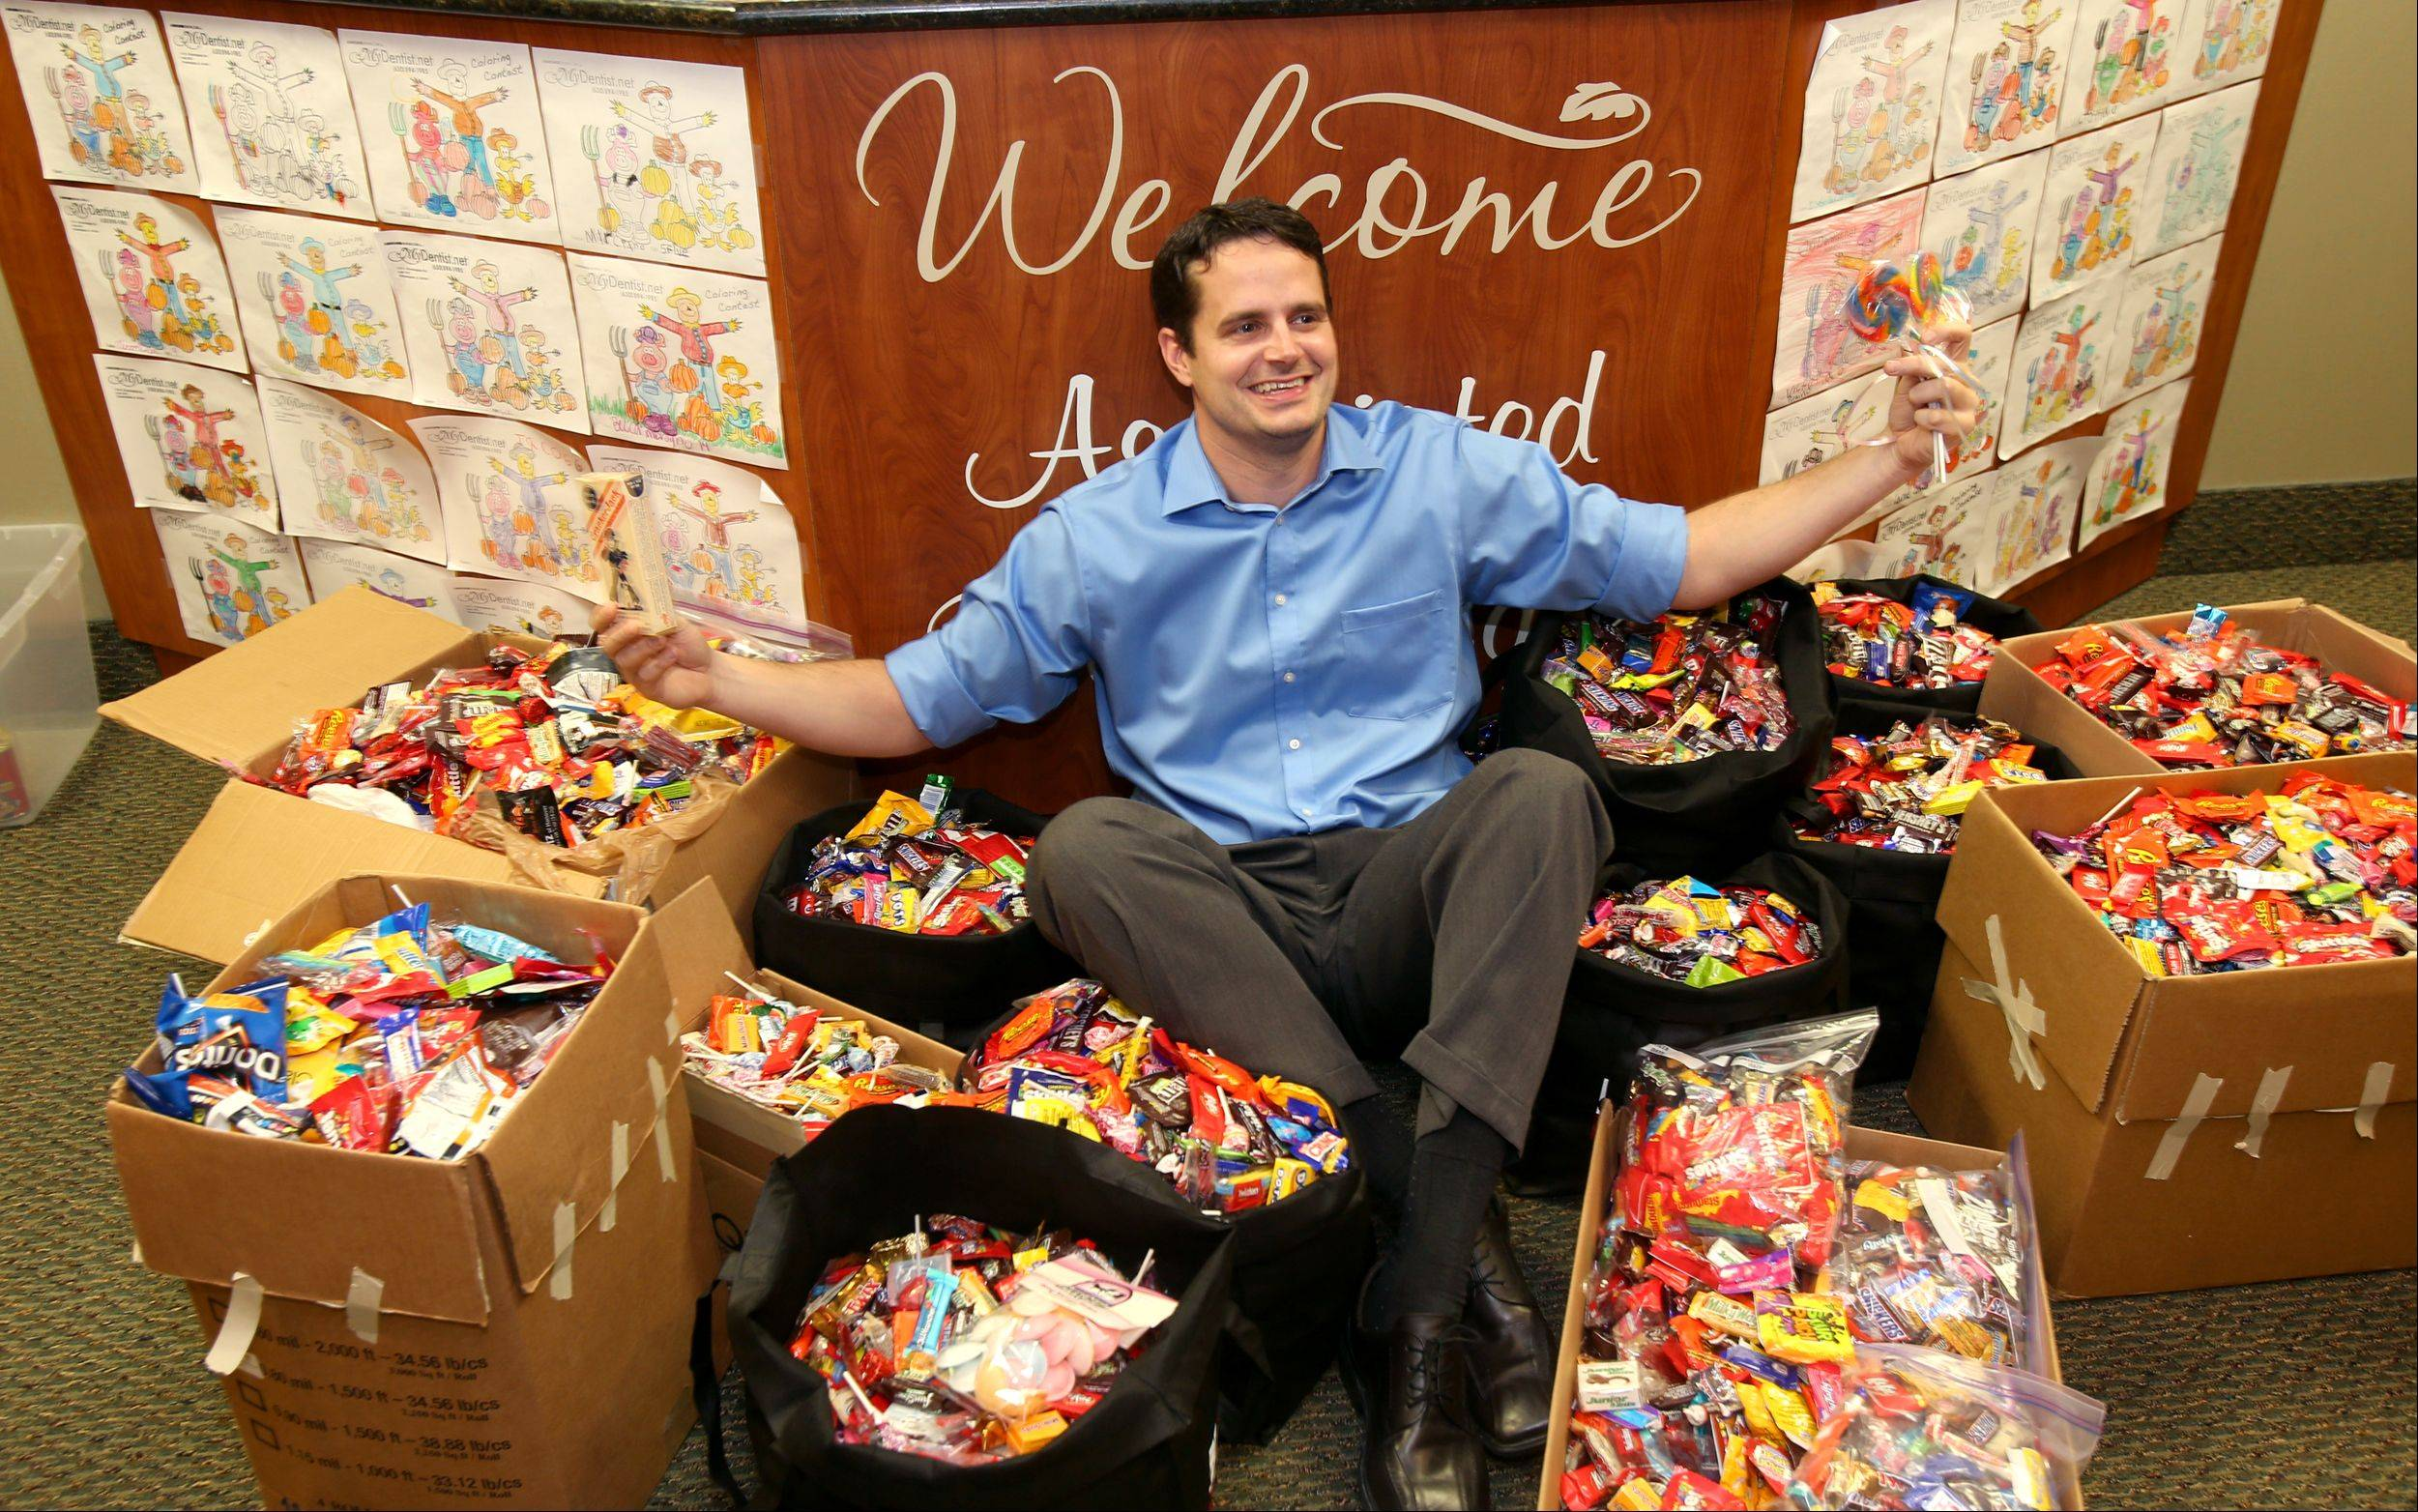 Dr. Adam Szatkowski of Associated Dental Care in Bloomingdale is surrounded by nearly 500 pounds of candy that will be shipped to U.S. troops through Operation Gratitude, a California-based charity.